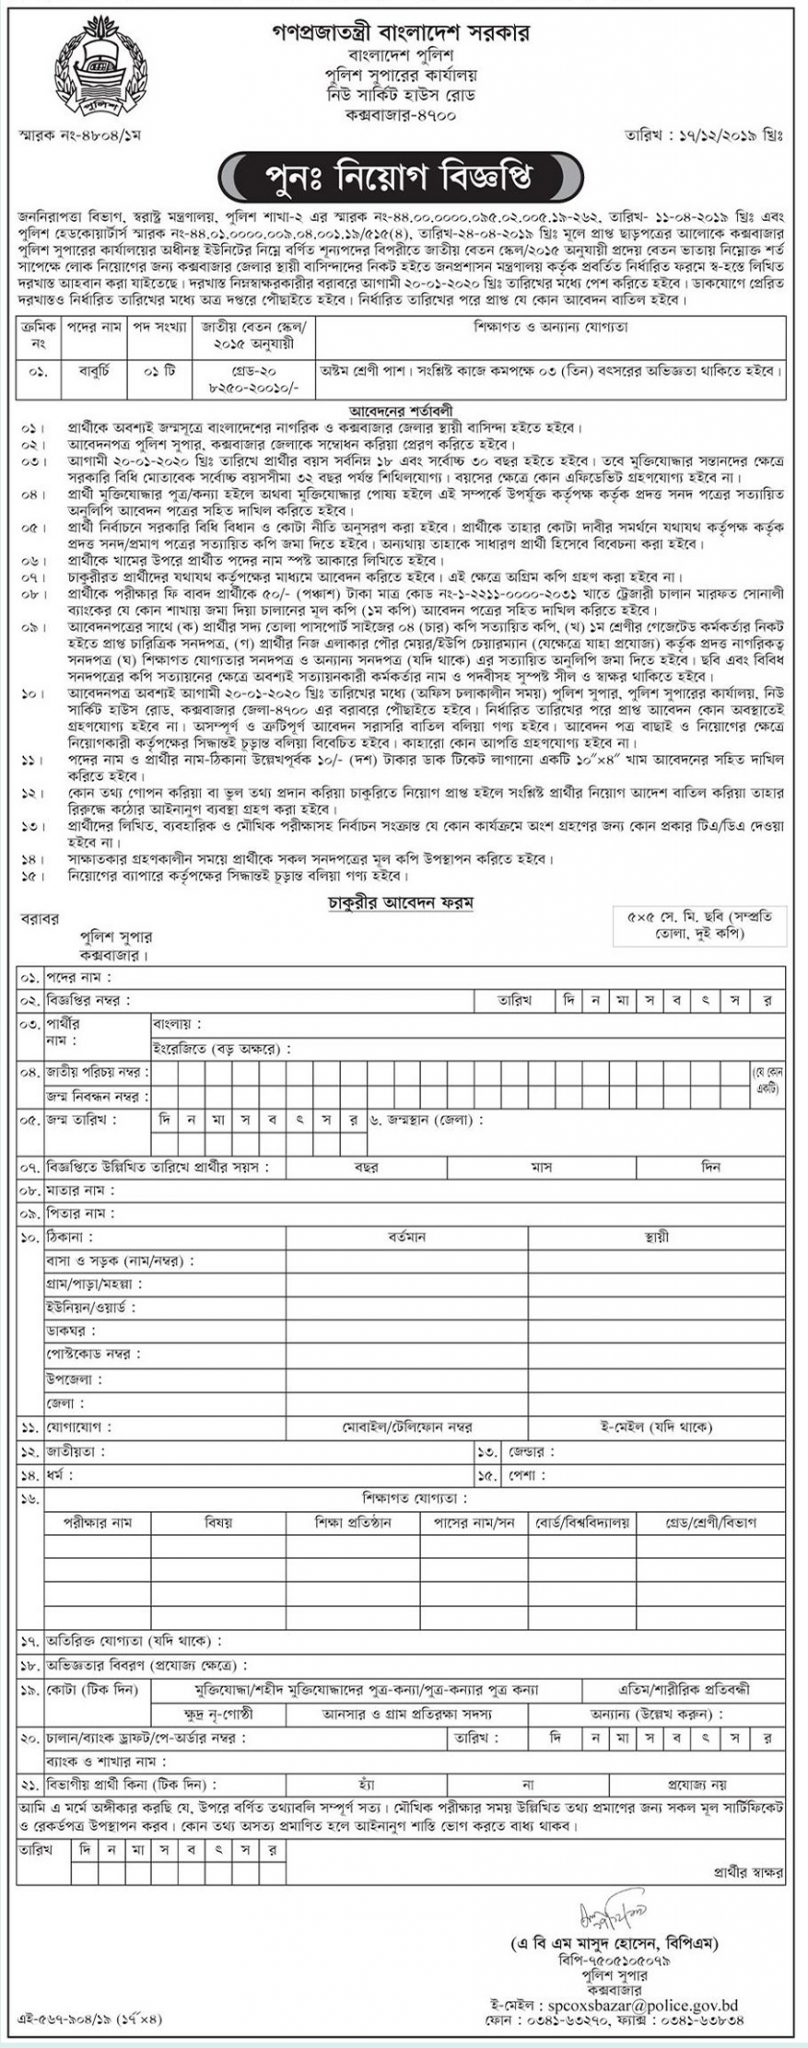 Office of Superintendent of Police Job Circular 2020